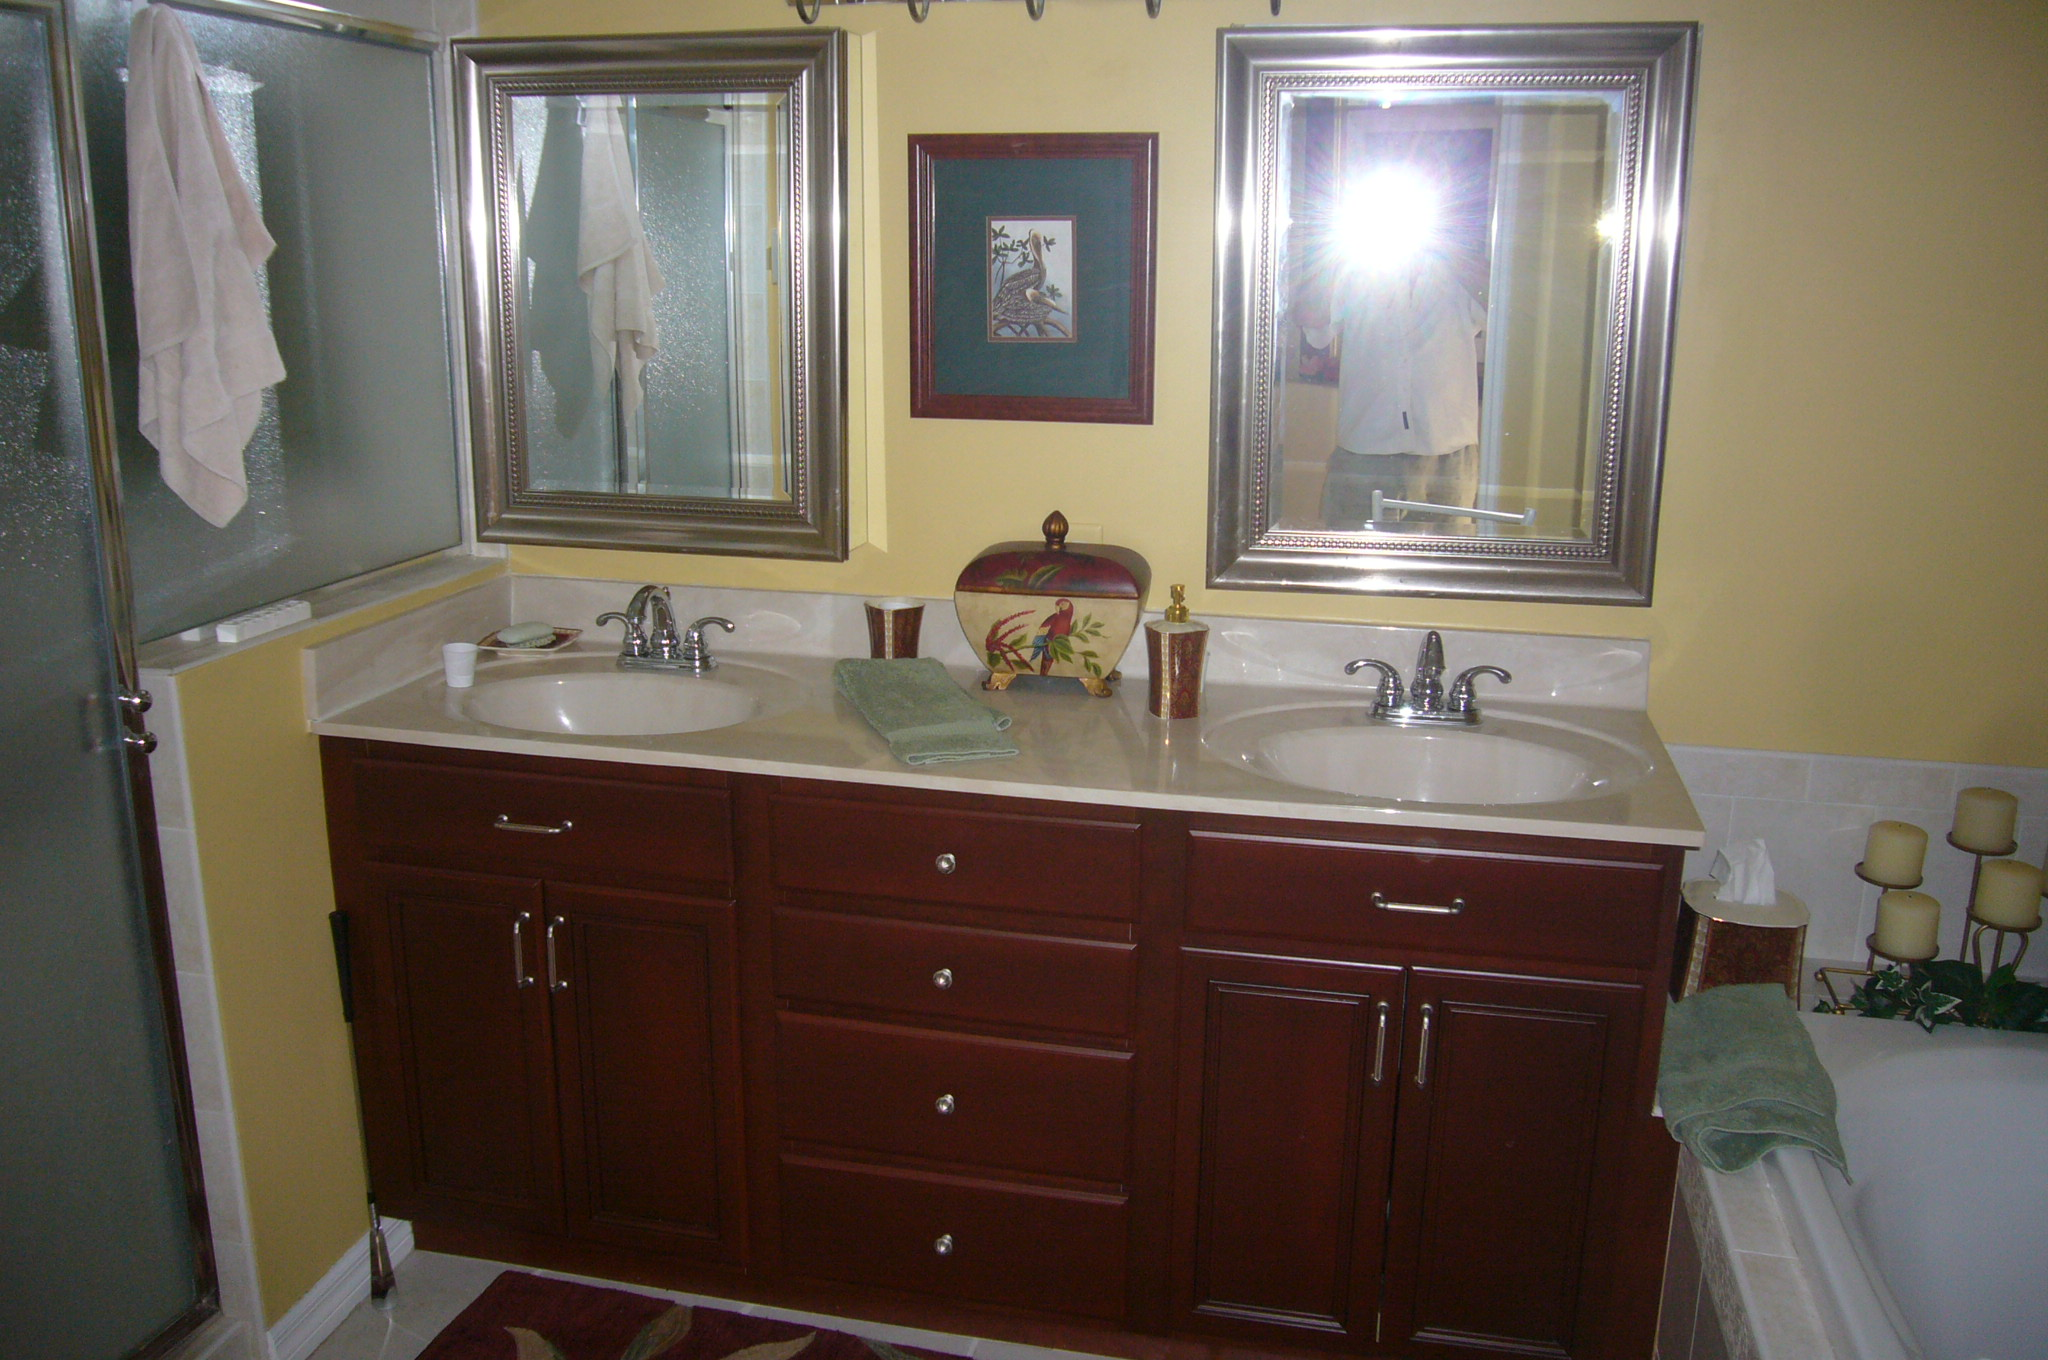 kitchen cabinets naples fl french country lighting fixtures refacing in vanity